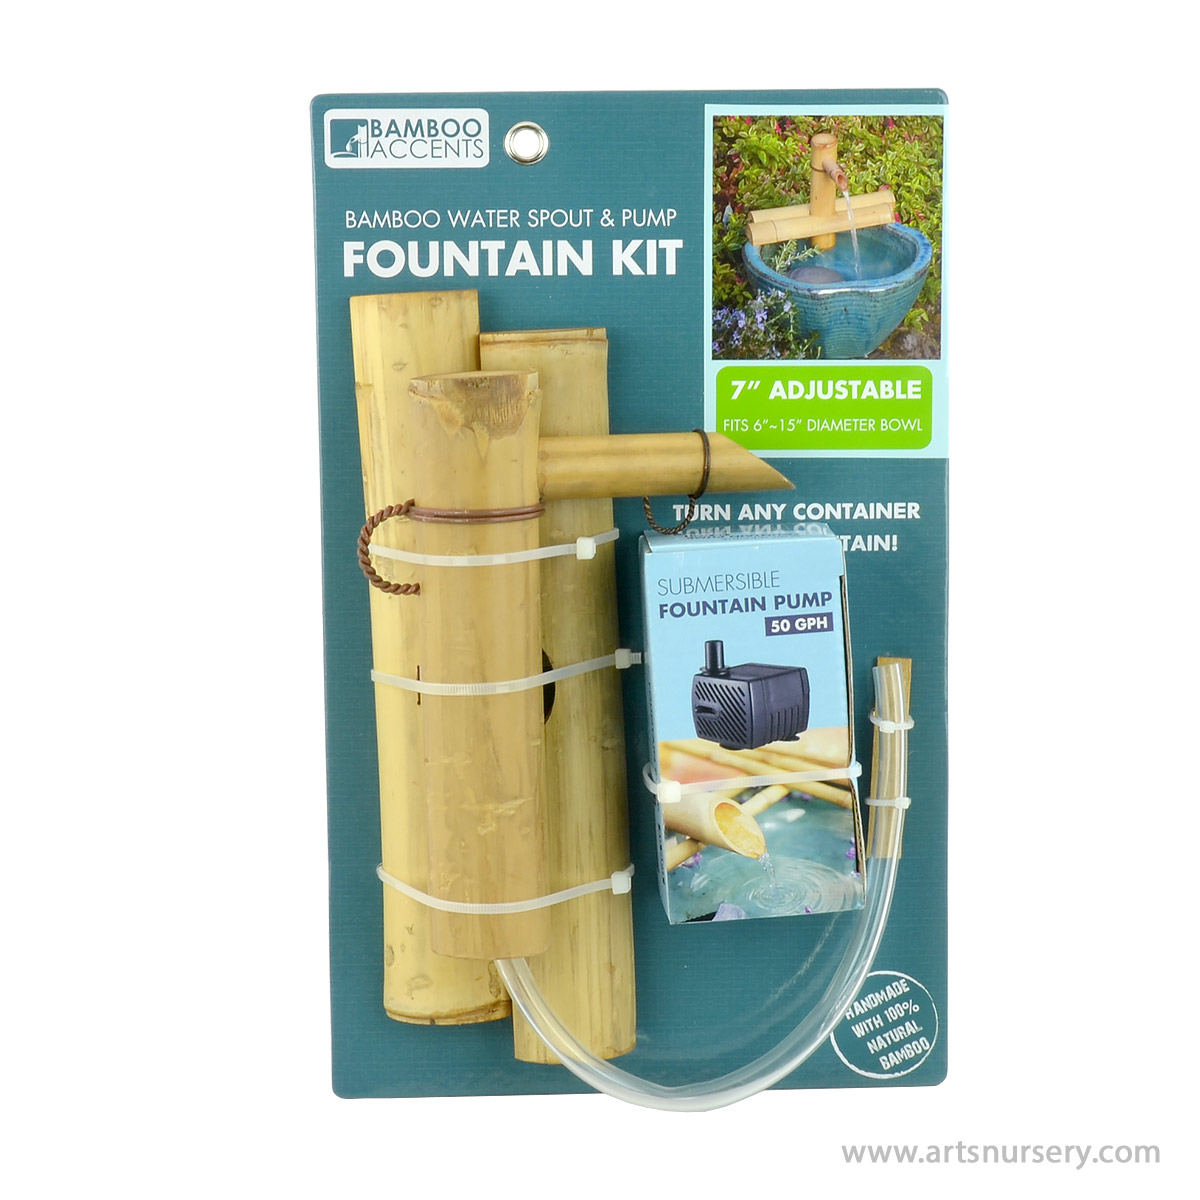 Bamboo Accents 7 Inch Adjustable Bamboo Water Spout and Pump Fountain Kit